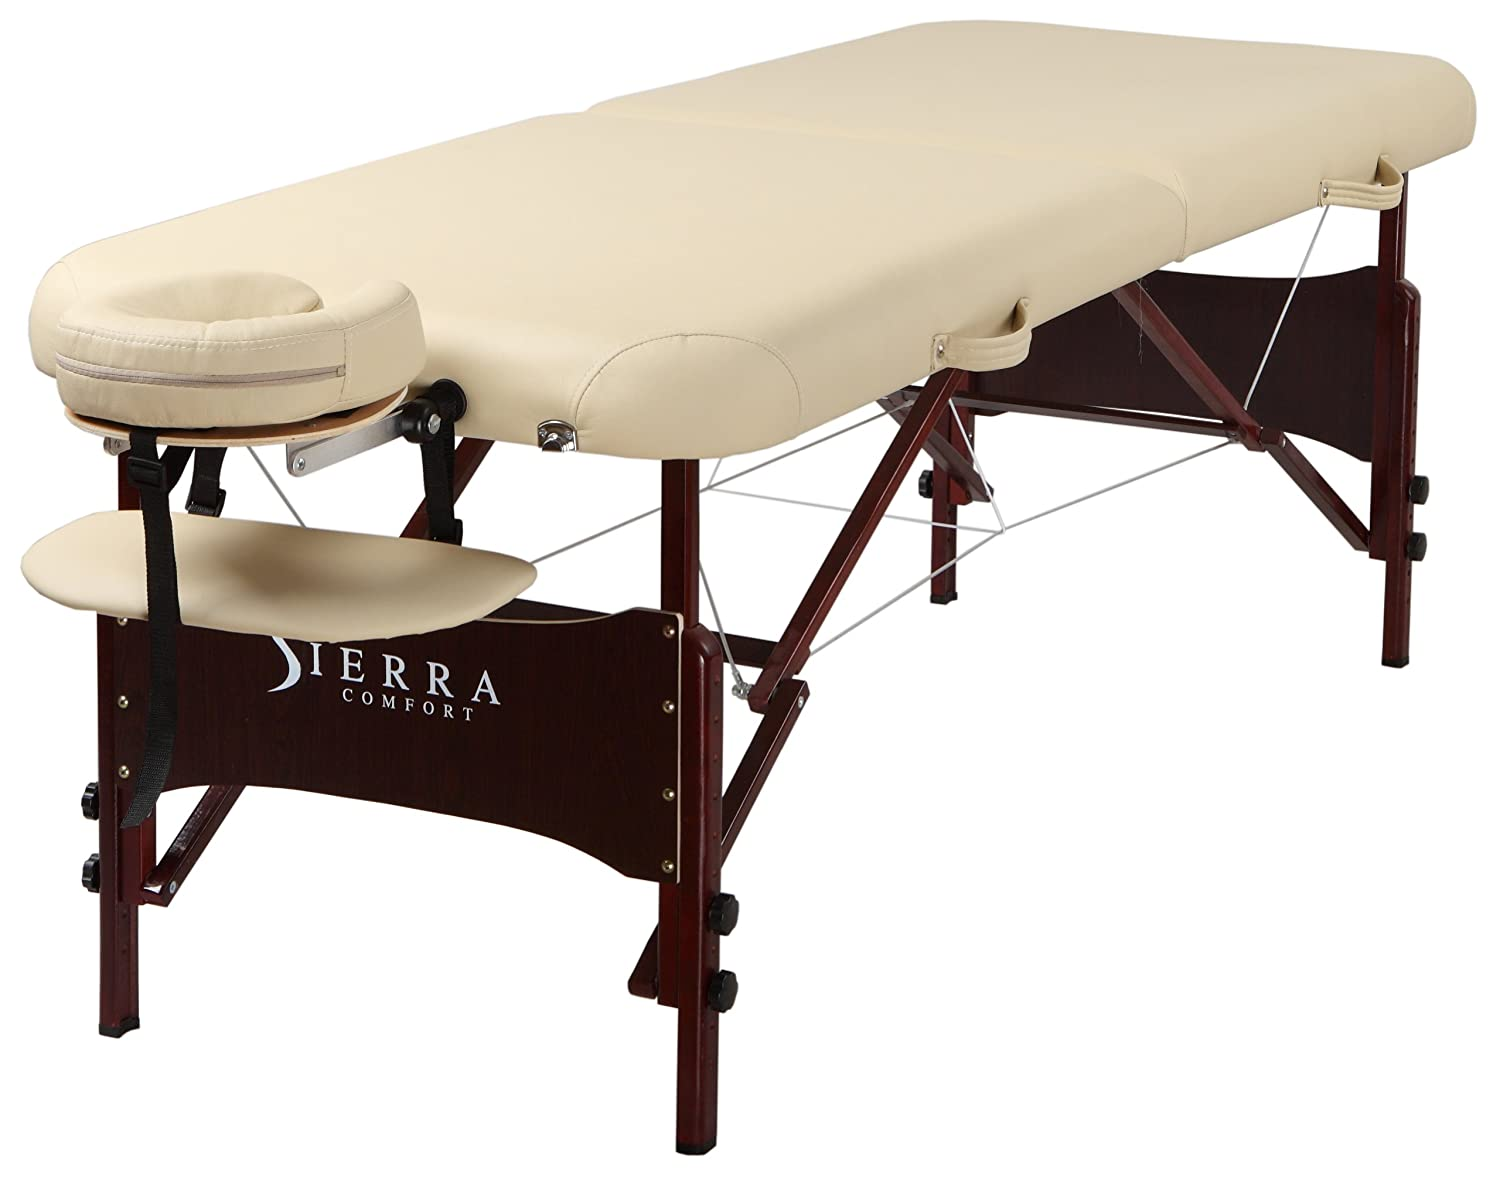 SierraComfort Preferred Portable Massage Table with Mahogany Finish, Cream